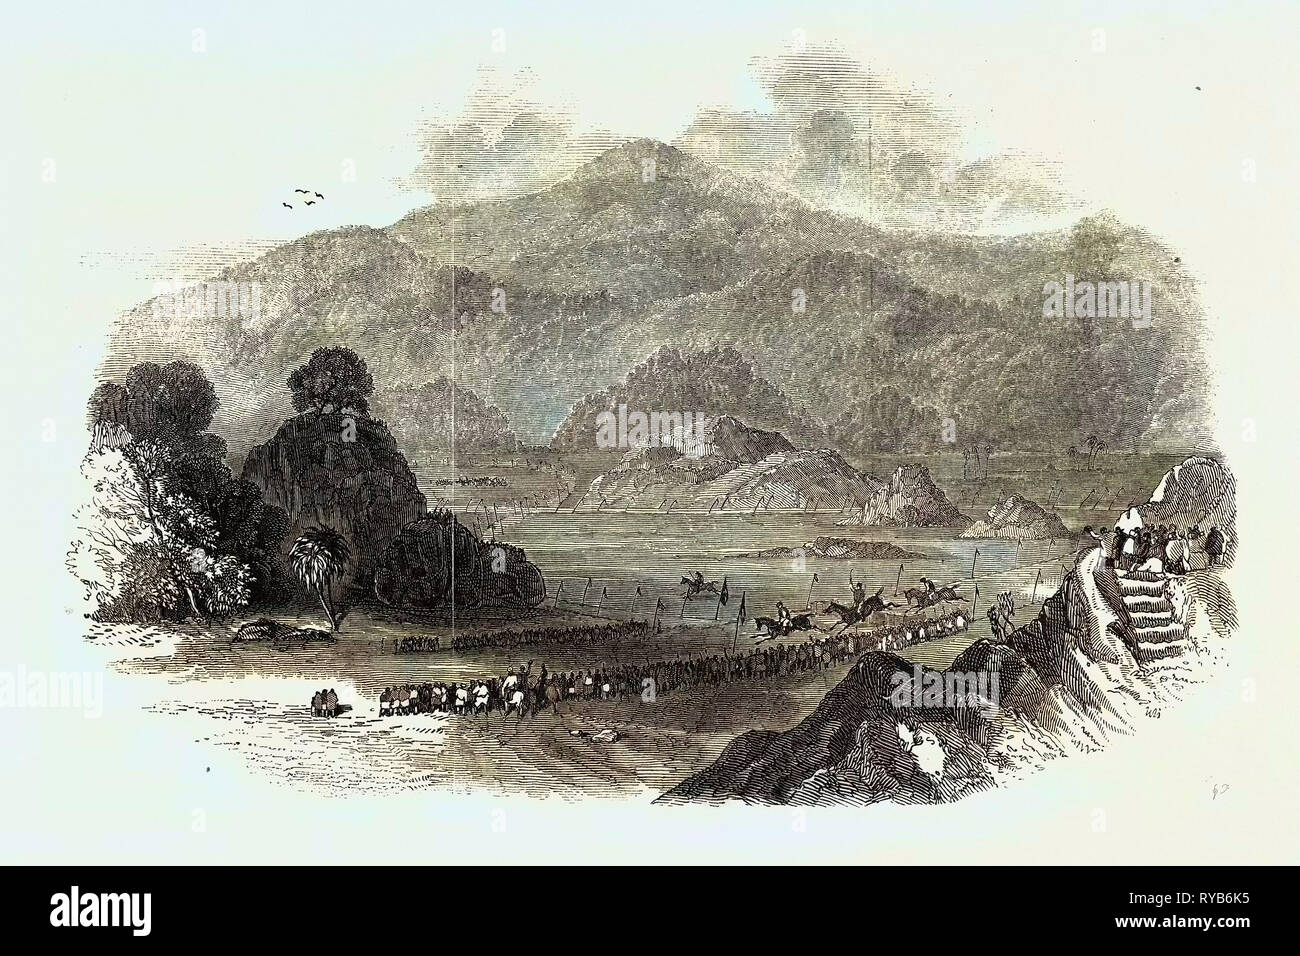 The Races at Aboo, in Bombay, 1847 - Stock Image